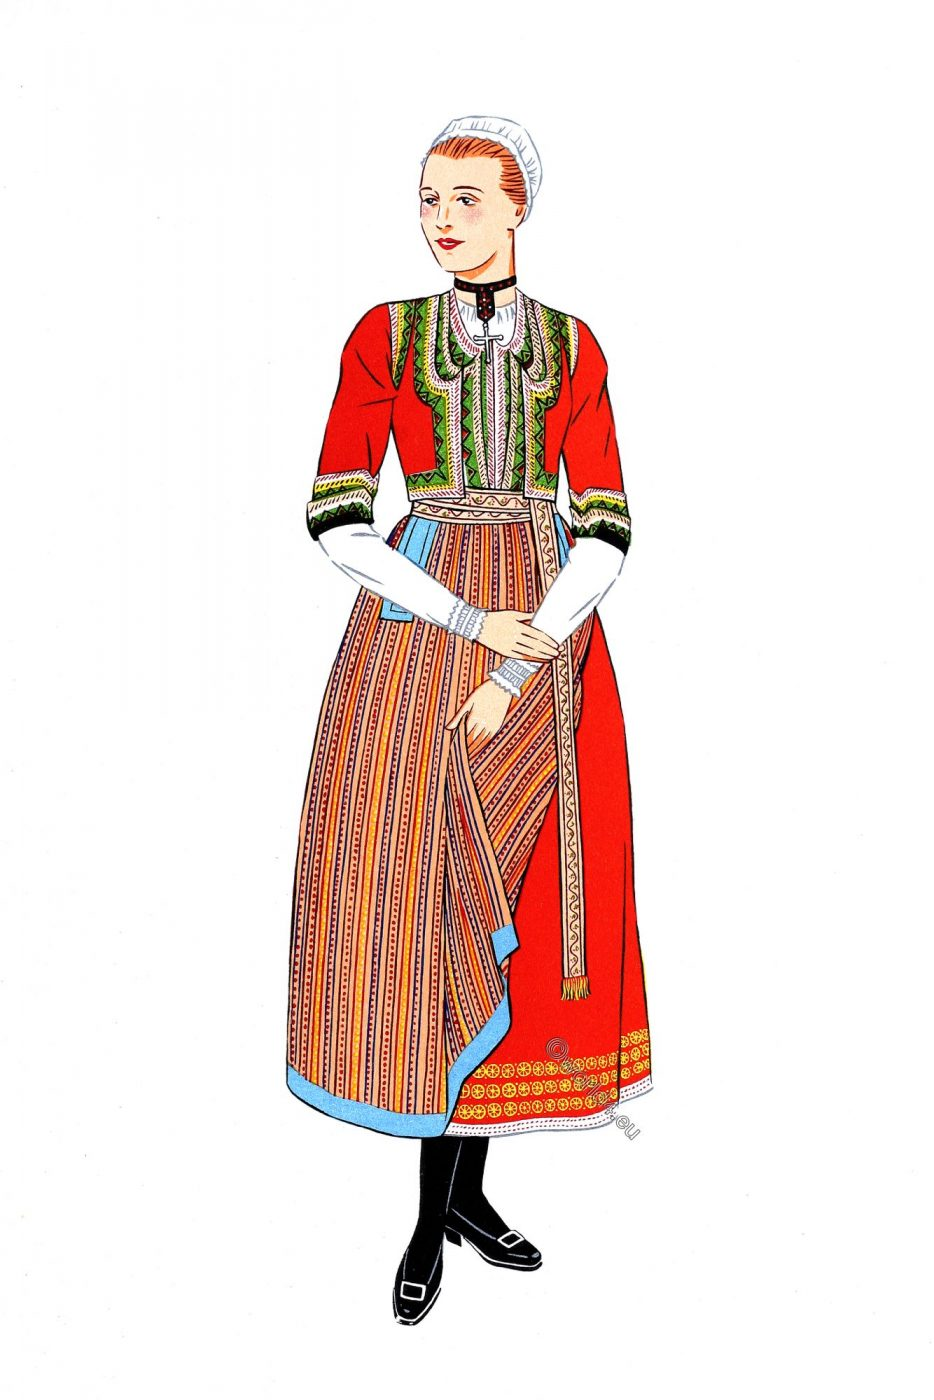 French traditional clothing, Elliant, Brittany, Finistère, folk costume,